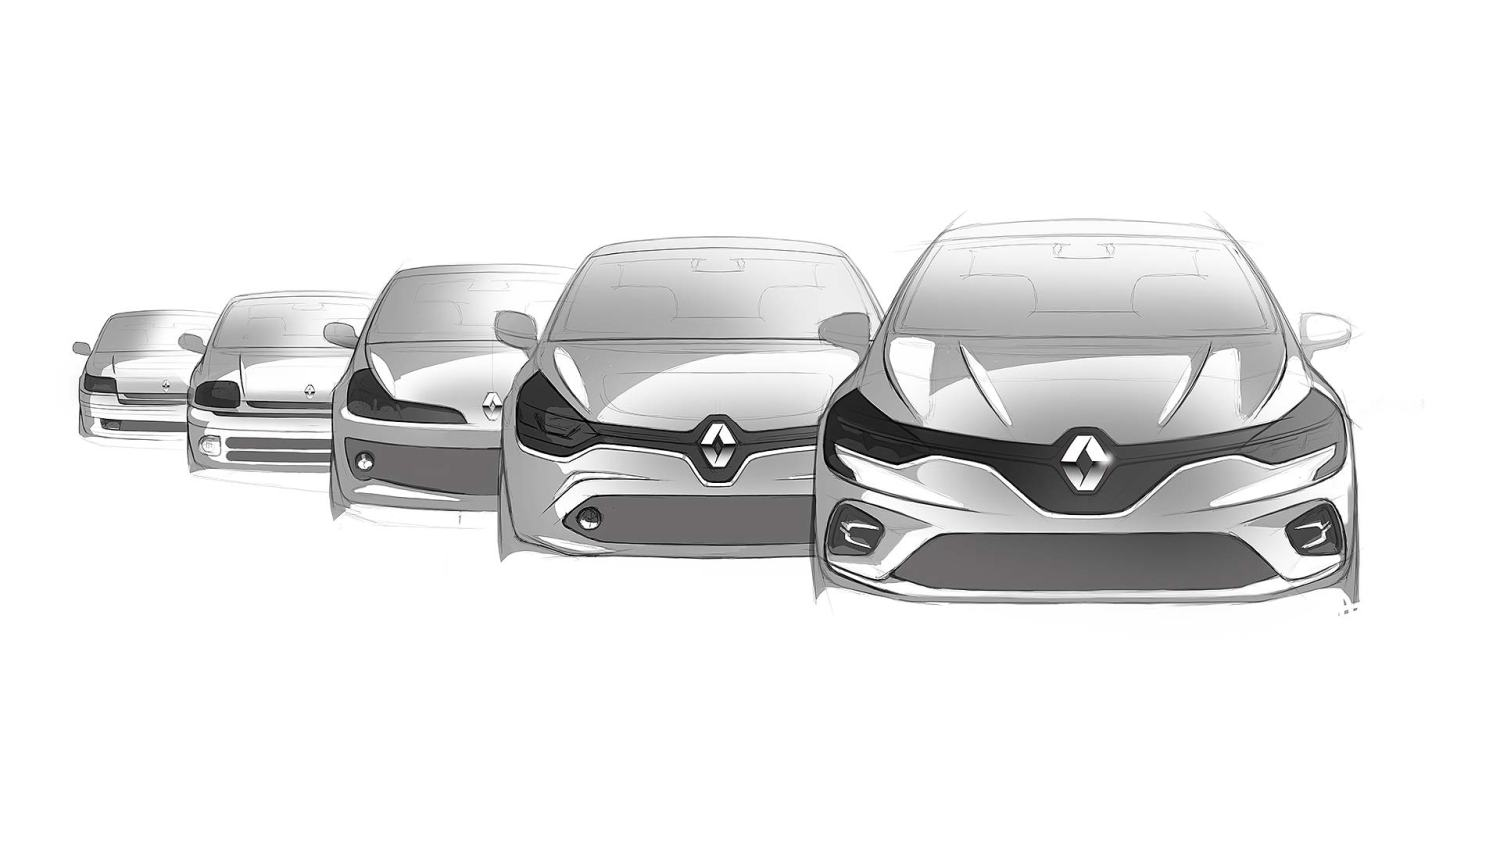 All-new 2019 Renault Clio